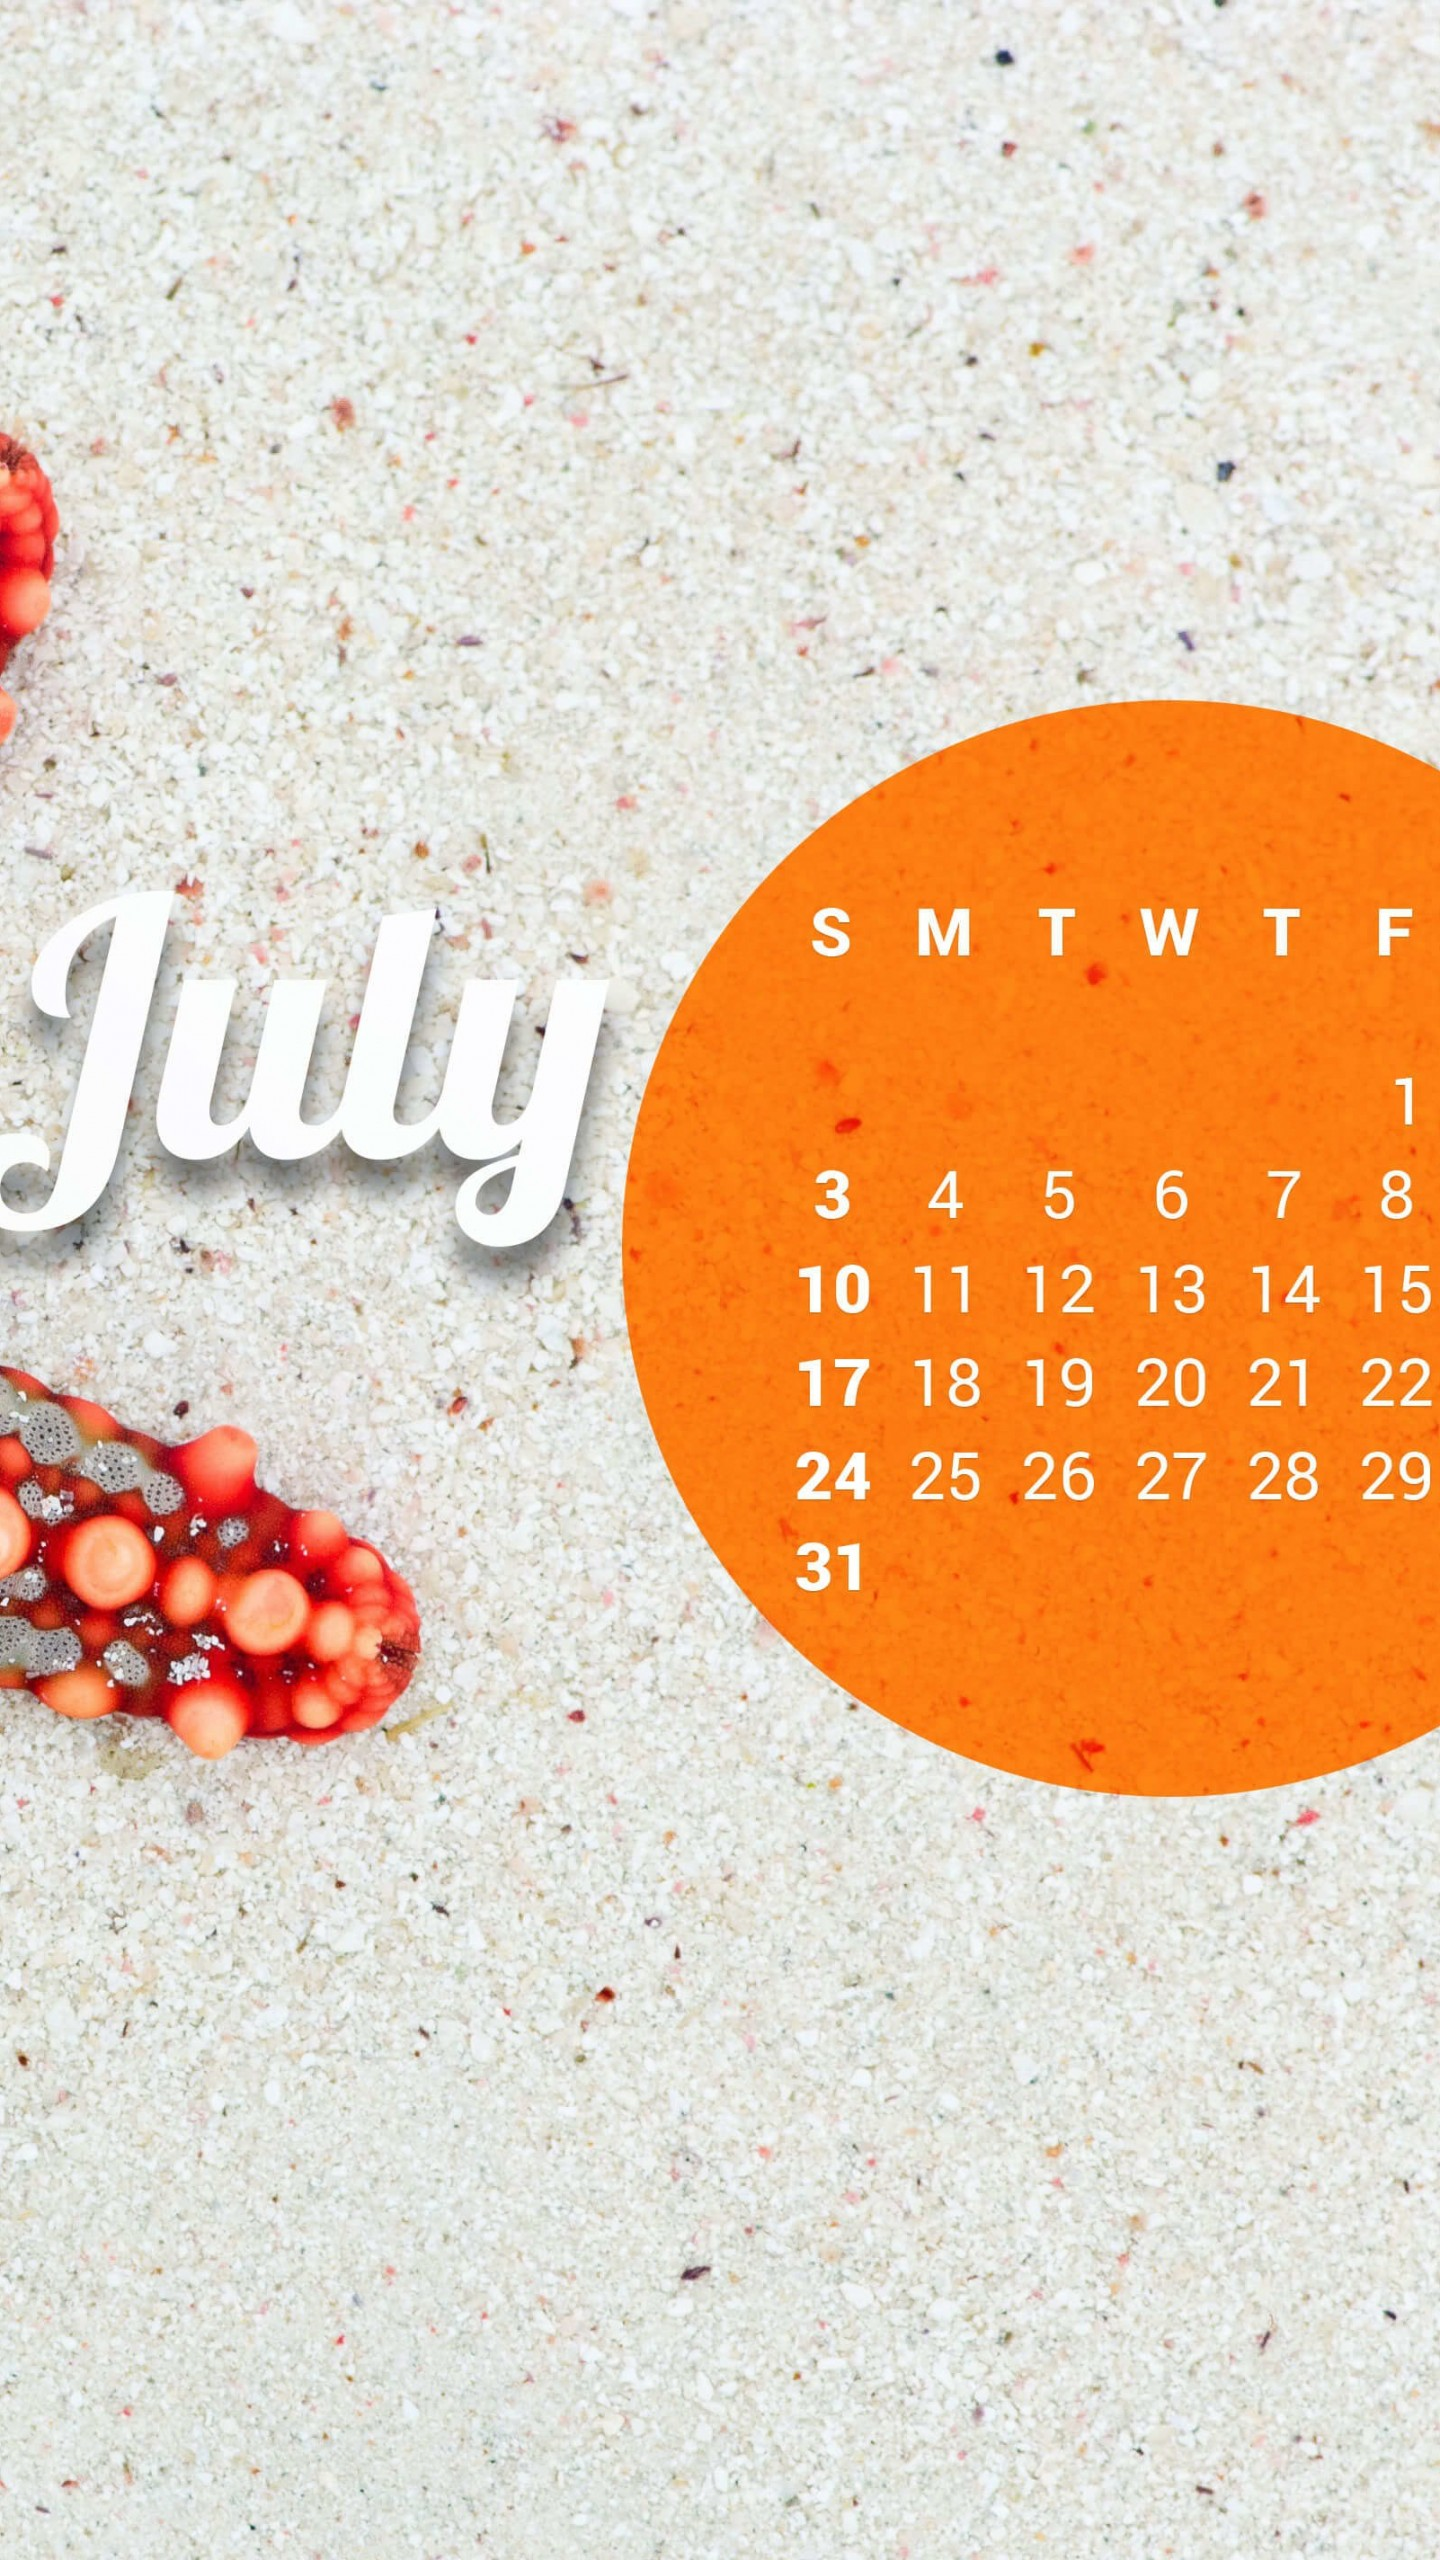 July 2016 Calendar Wallpaper for SAMSUNG Galaxy Note 4